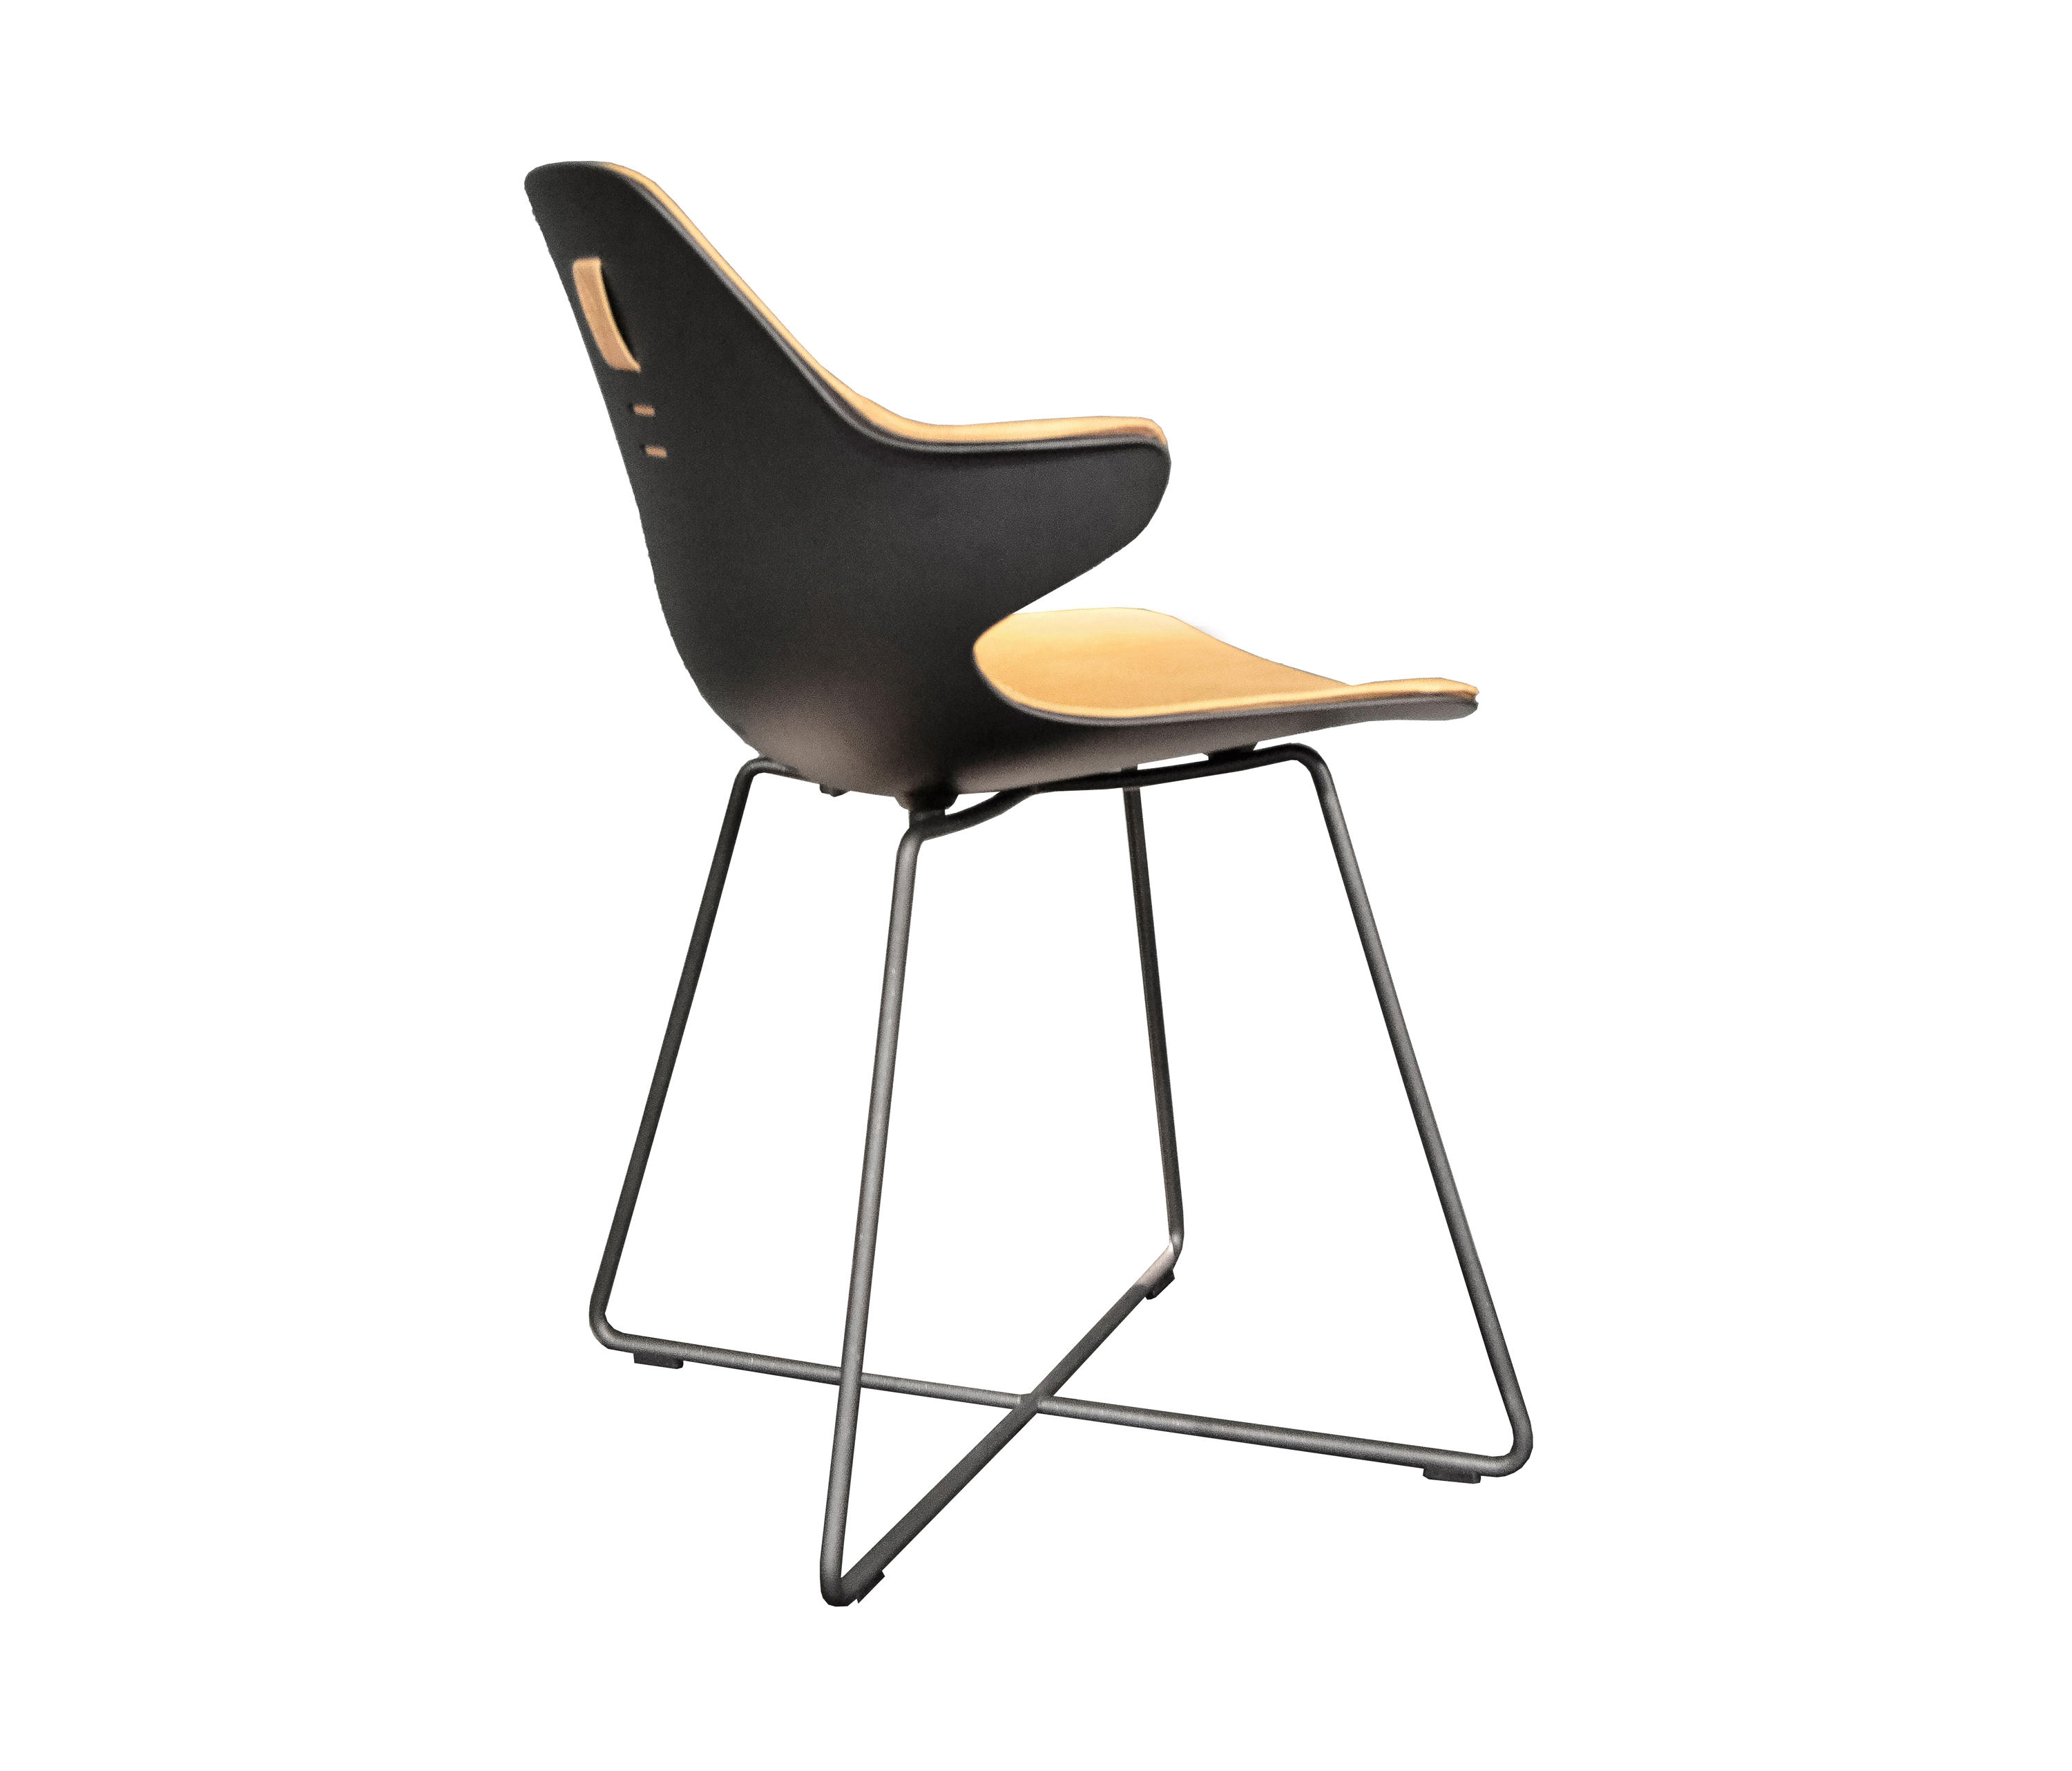 Kirk Chair Chairs From Kff Architonic